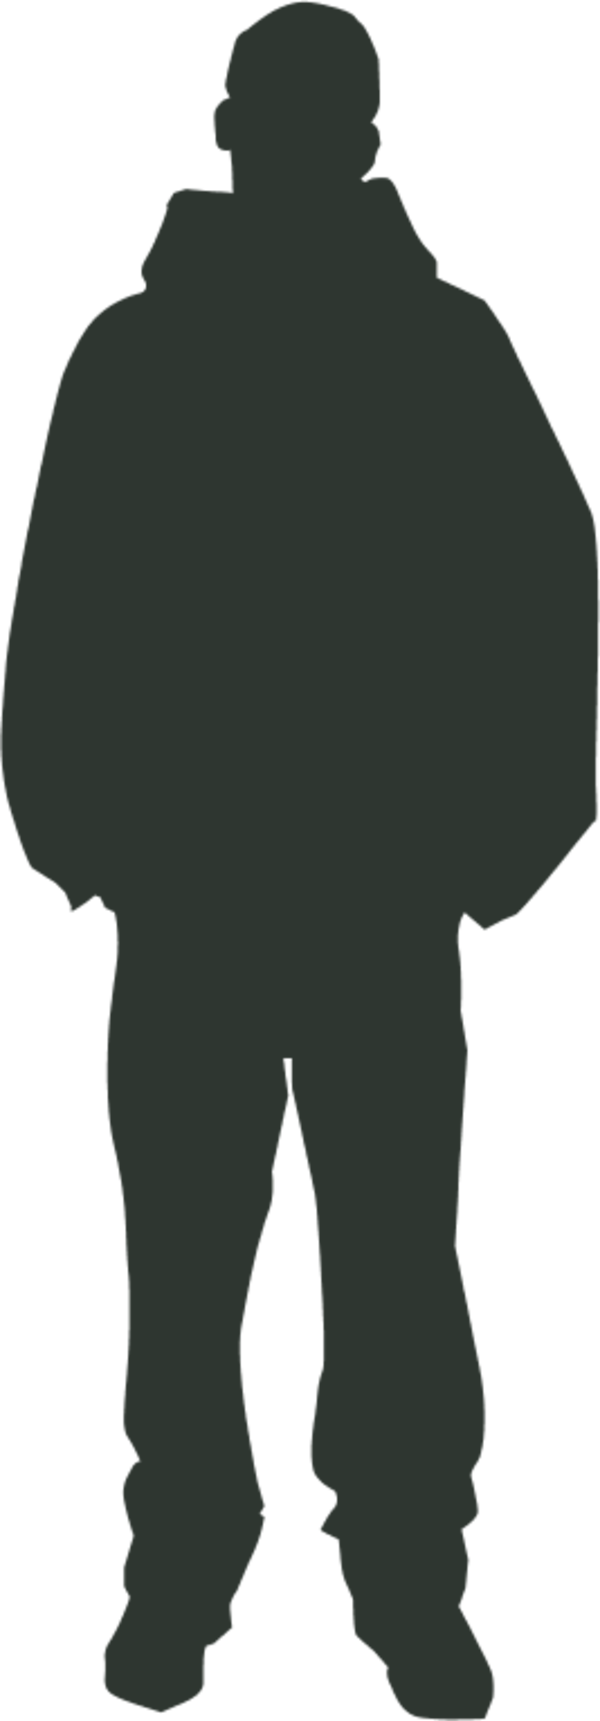 Lamp clipart shadow. Mustache silhouette at getdrawings